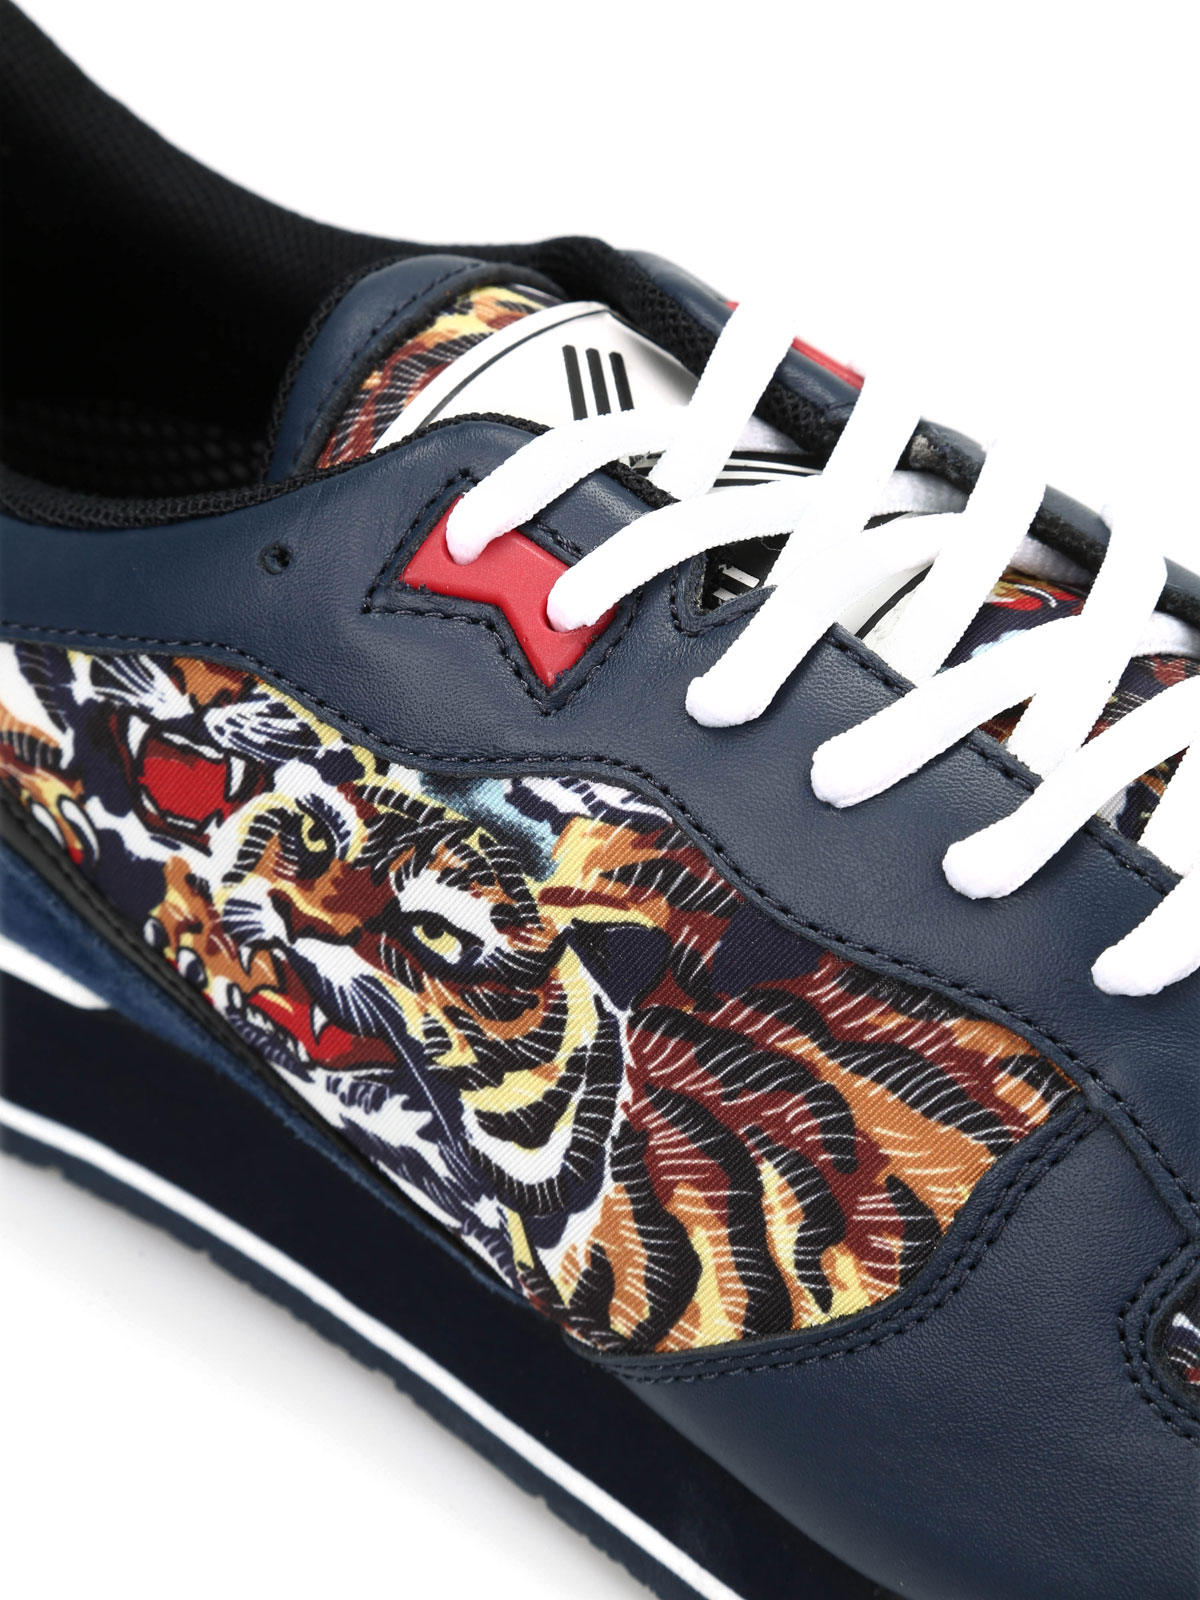 Kenzo Chaussures Pour M42465 Baskets Sport Flying Homme De Tiger axOEnOP